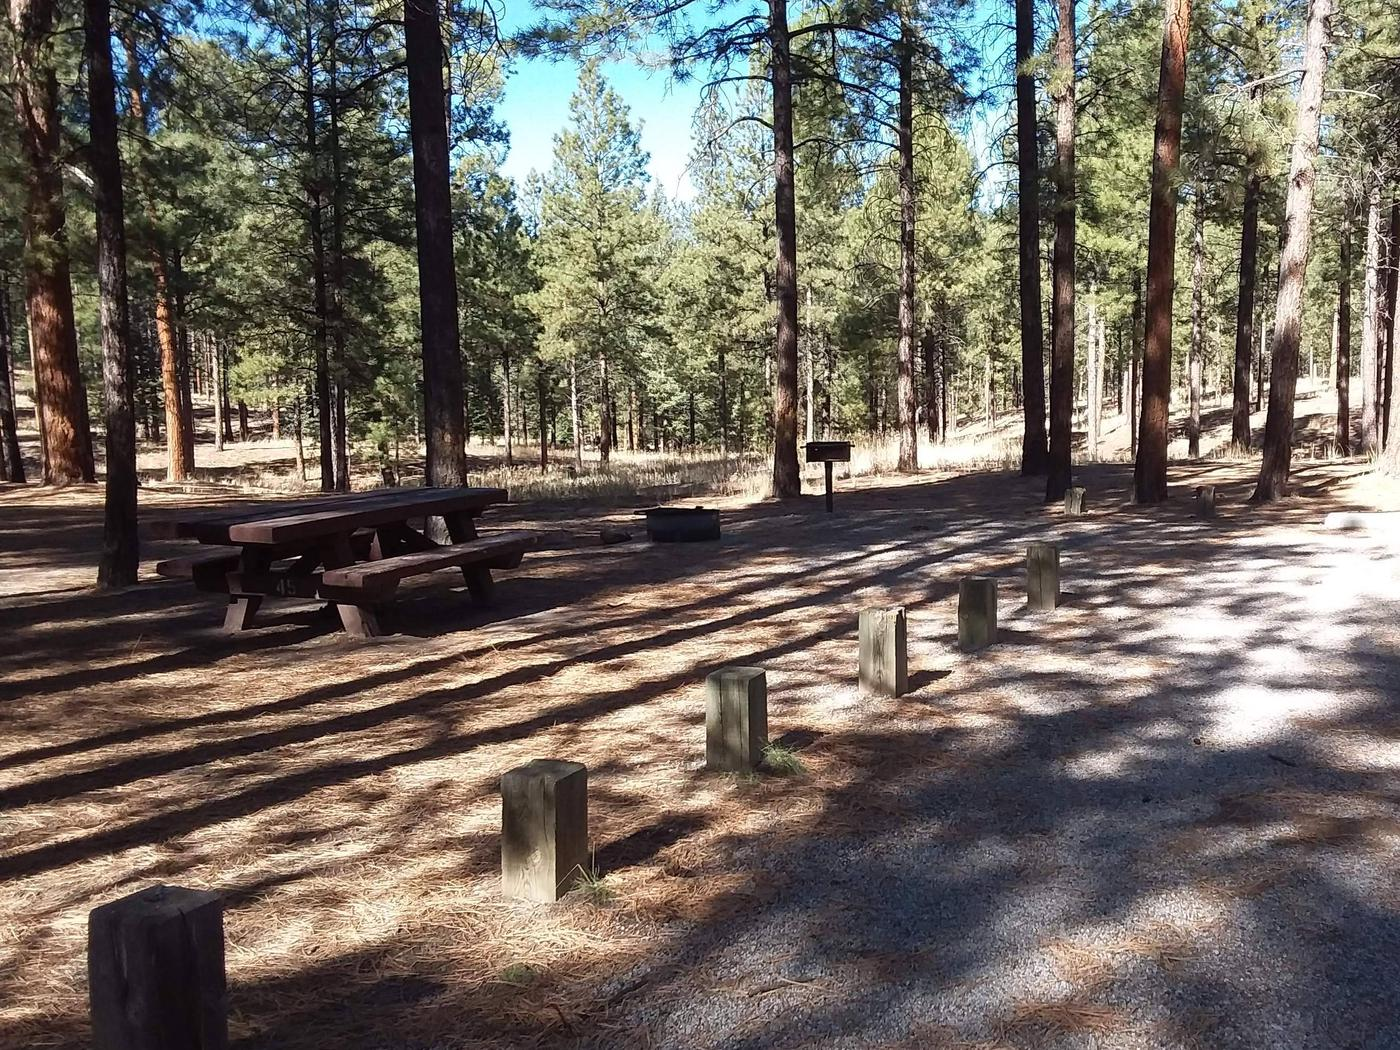 Site 45 has a picnic table, fire pit, grill and shade from nearby pines.Site 45